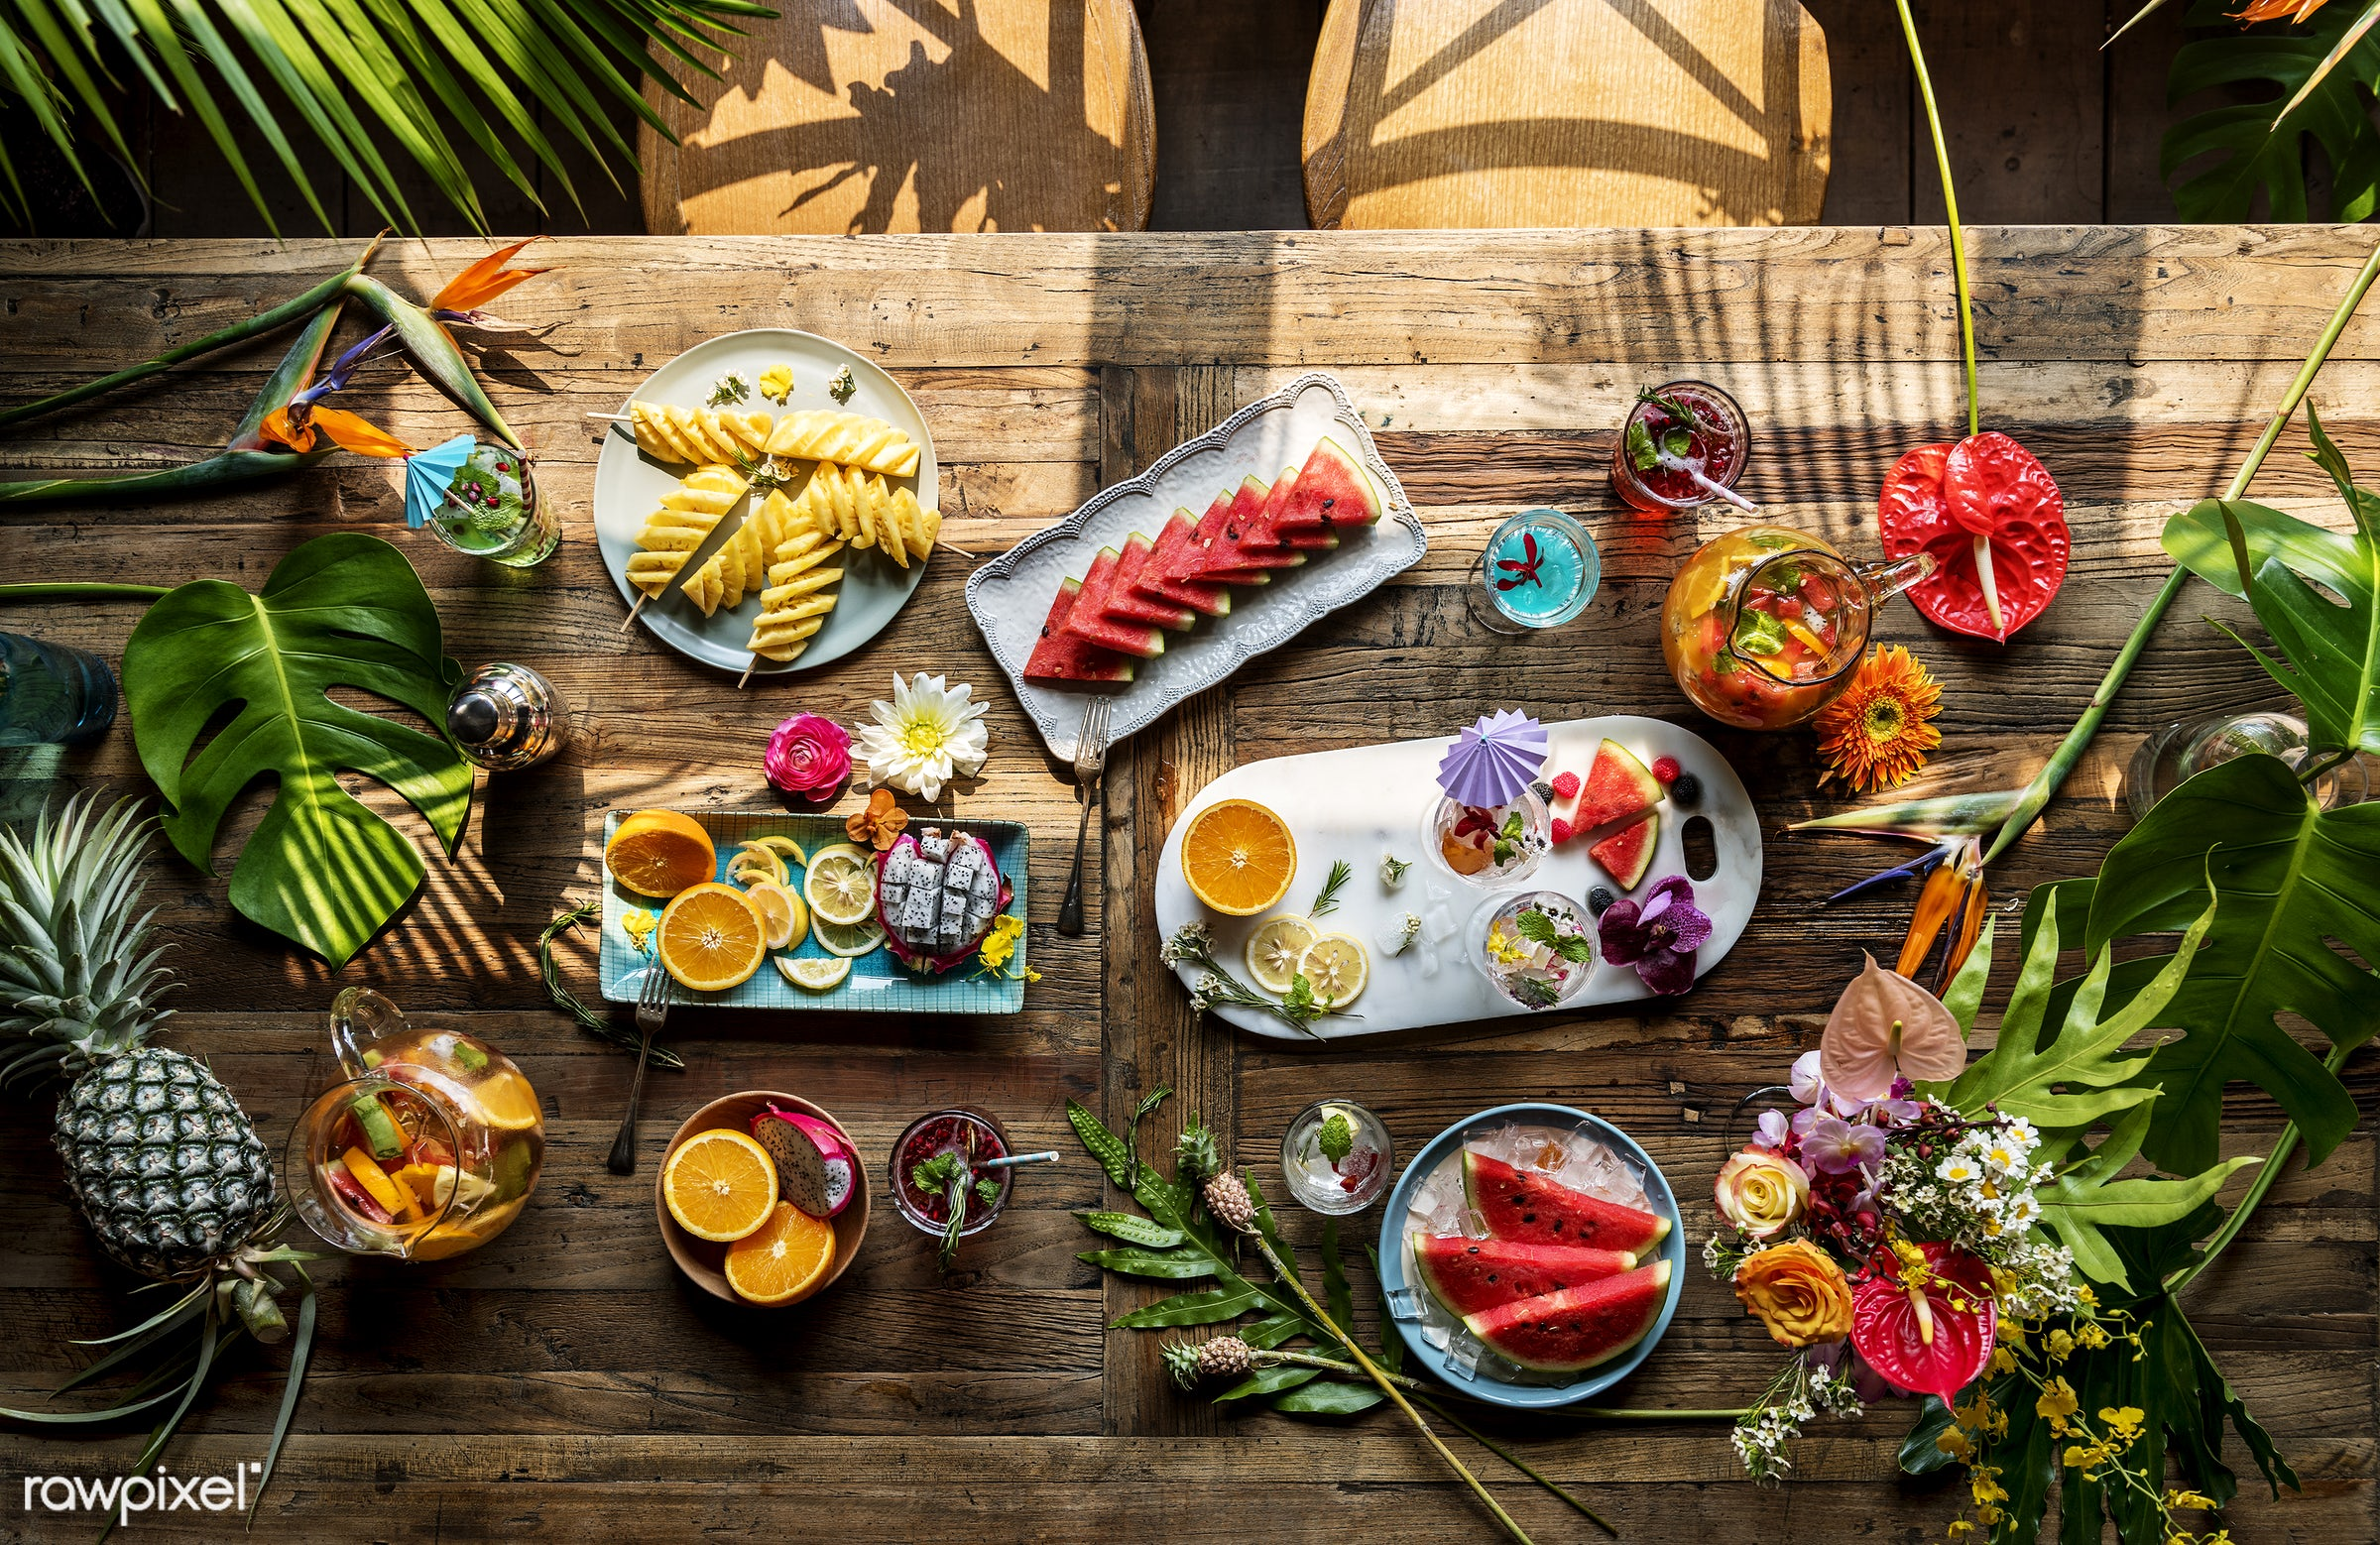 tropical, refreshment, fruits, table, drinks, wooden, fresh, food, juice, cocktail, natural, flower